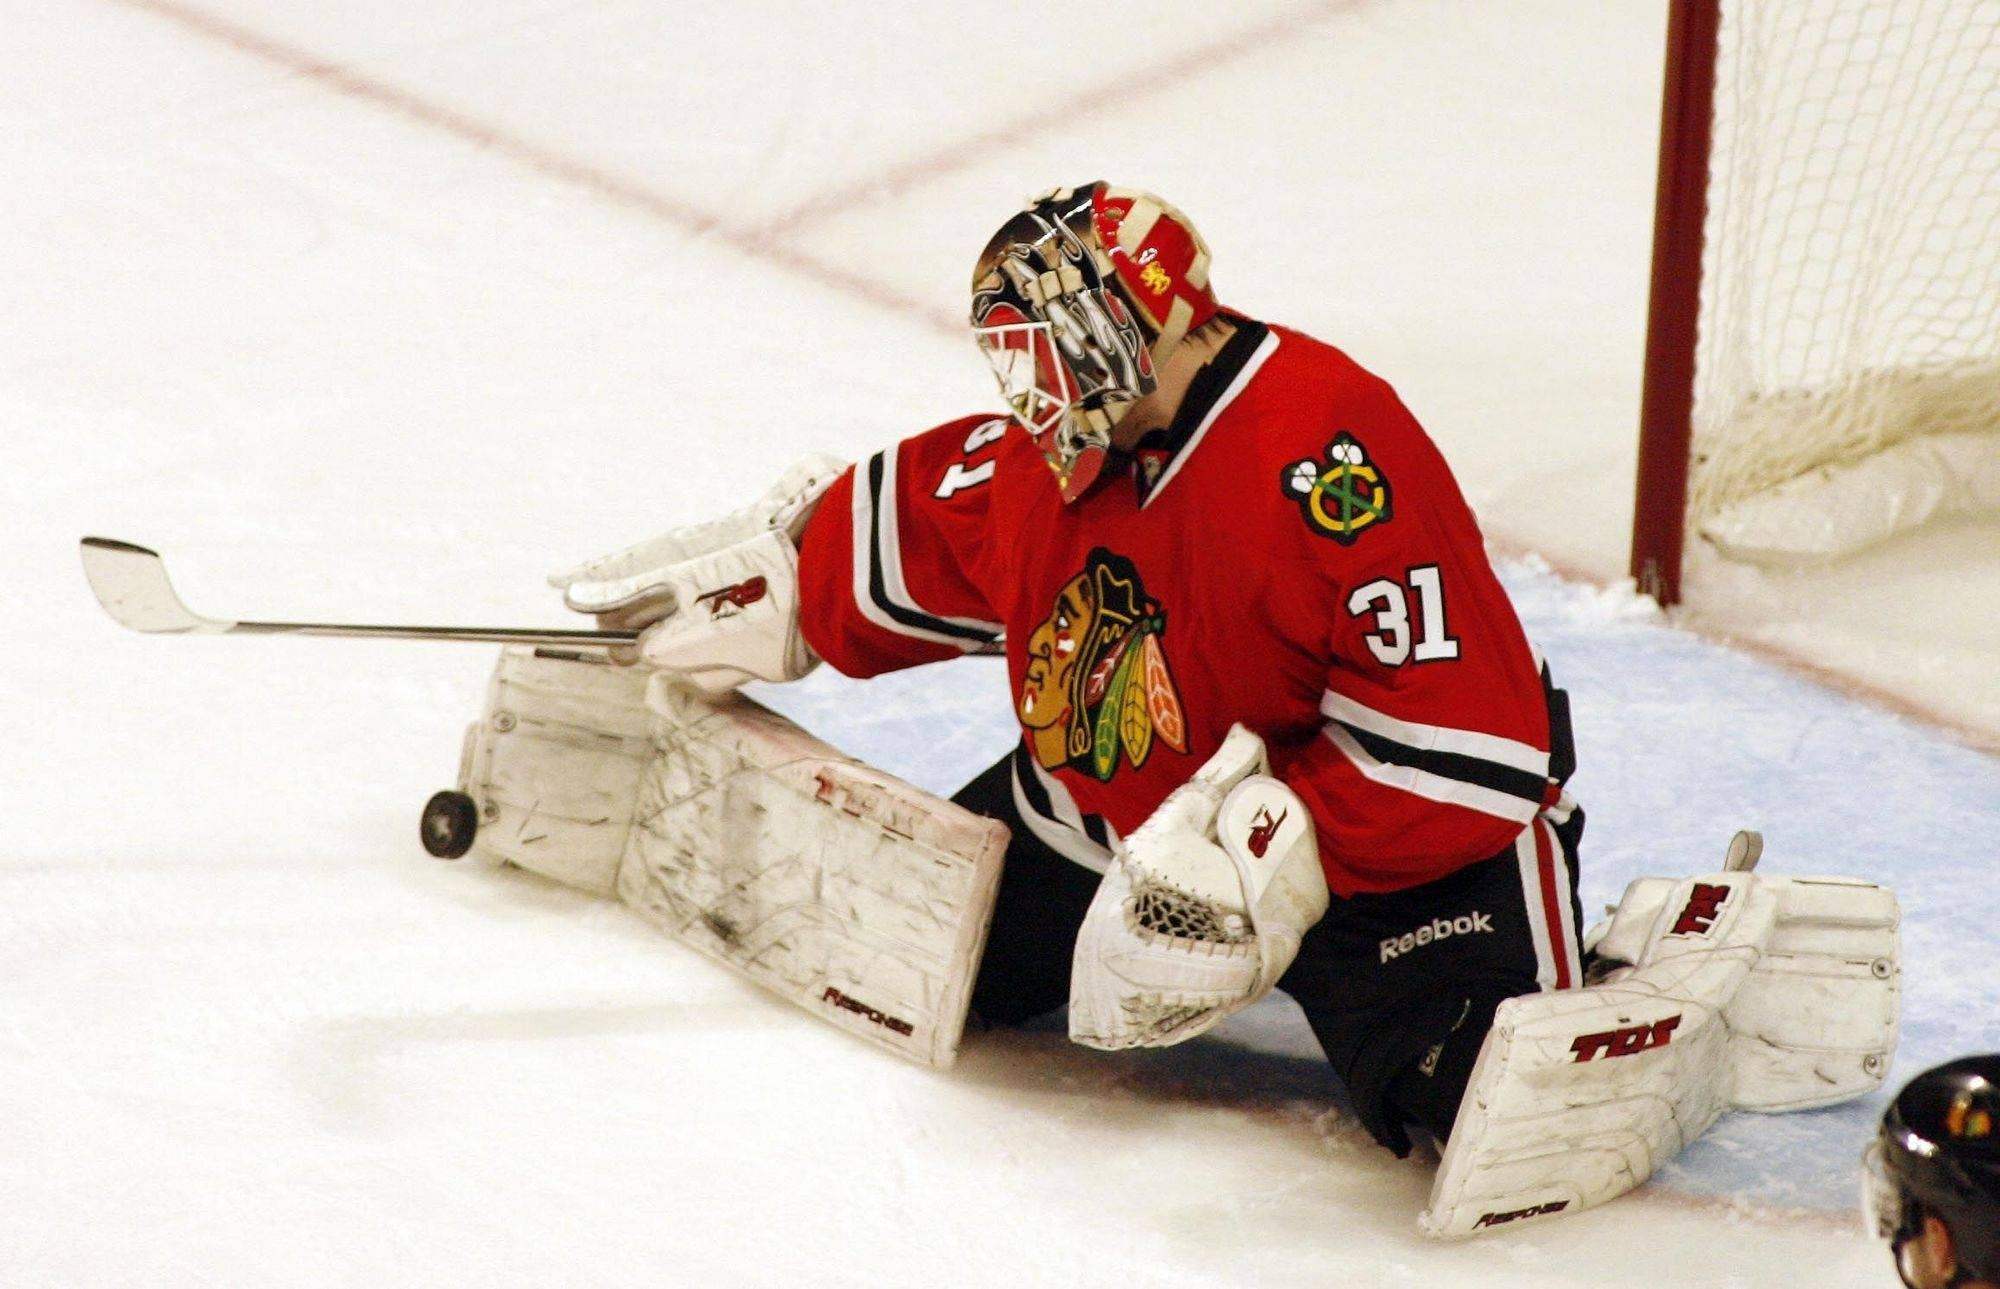 Chicago Blackhawks goalie Antti Niemi (31) pulls in a save during the first period Sunday at the United Center in Chicago during Game 2 of the conference quarterfinals.